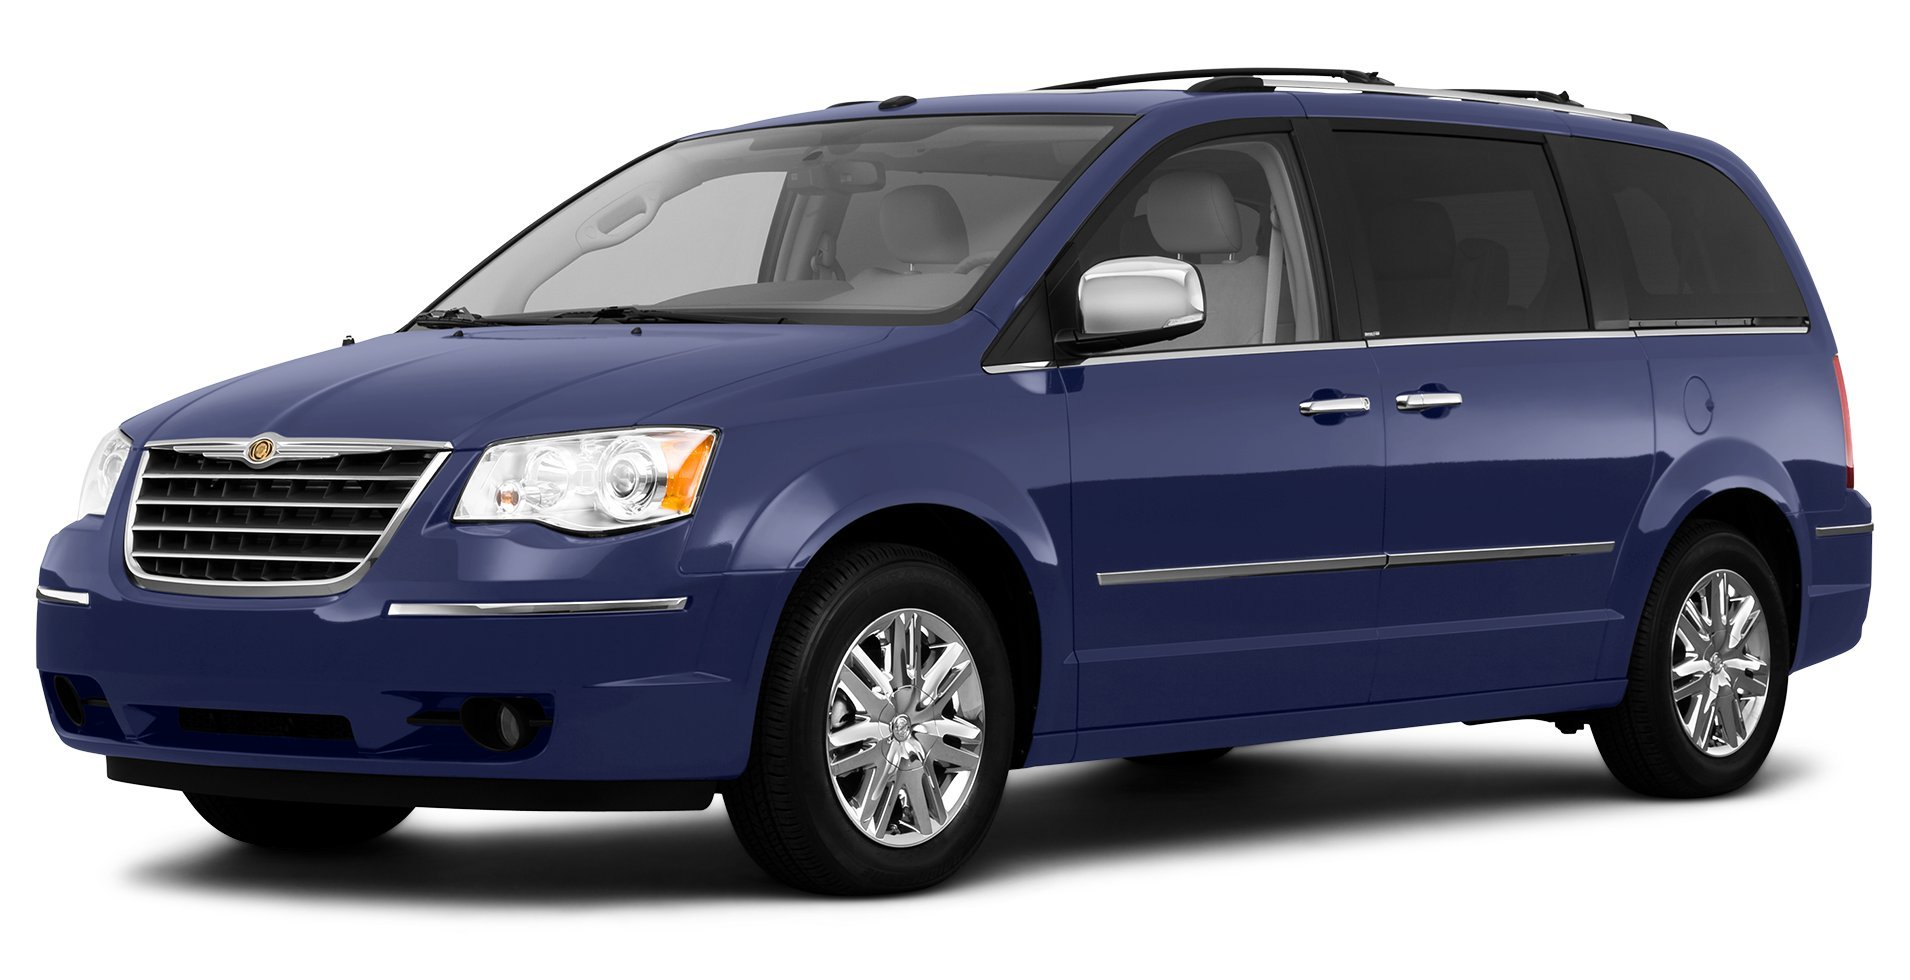 2010 chrysler town and country limited owners manual